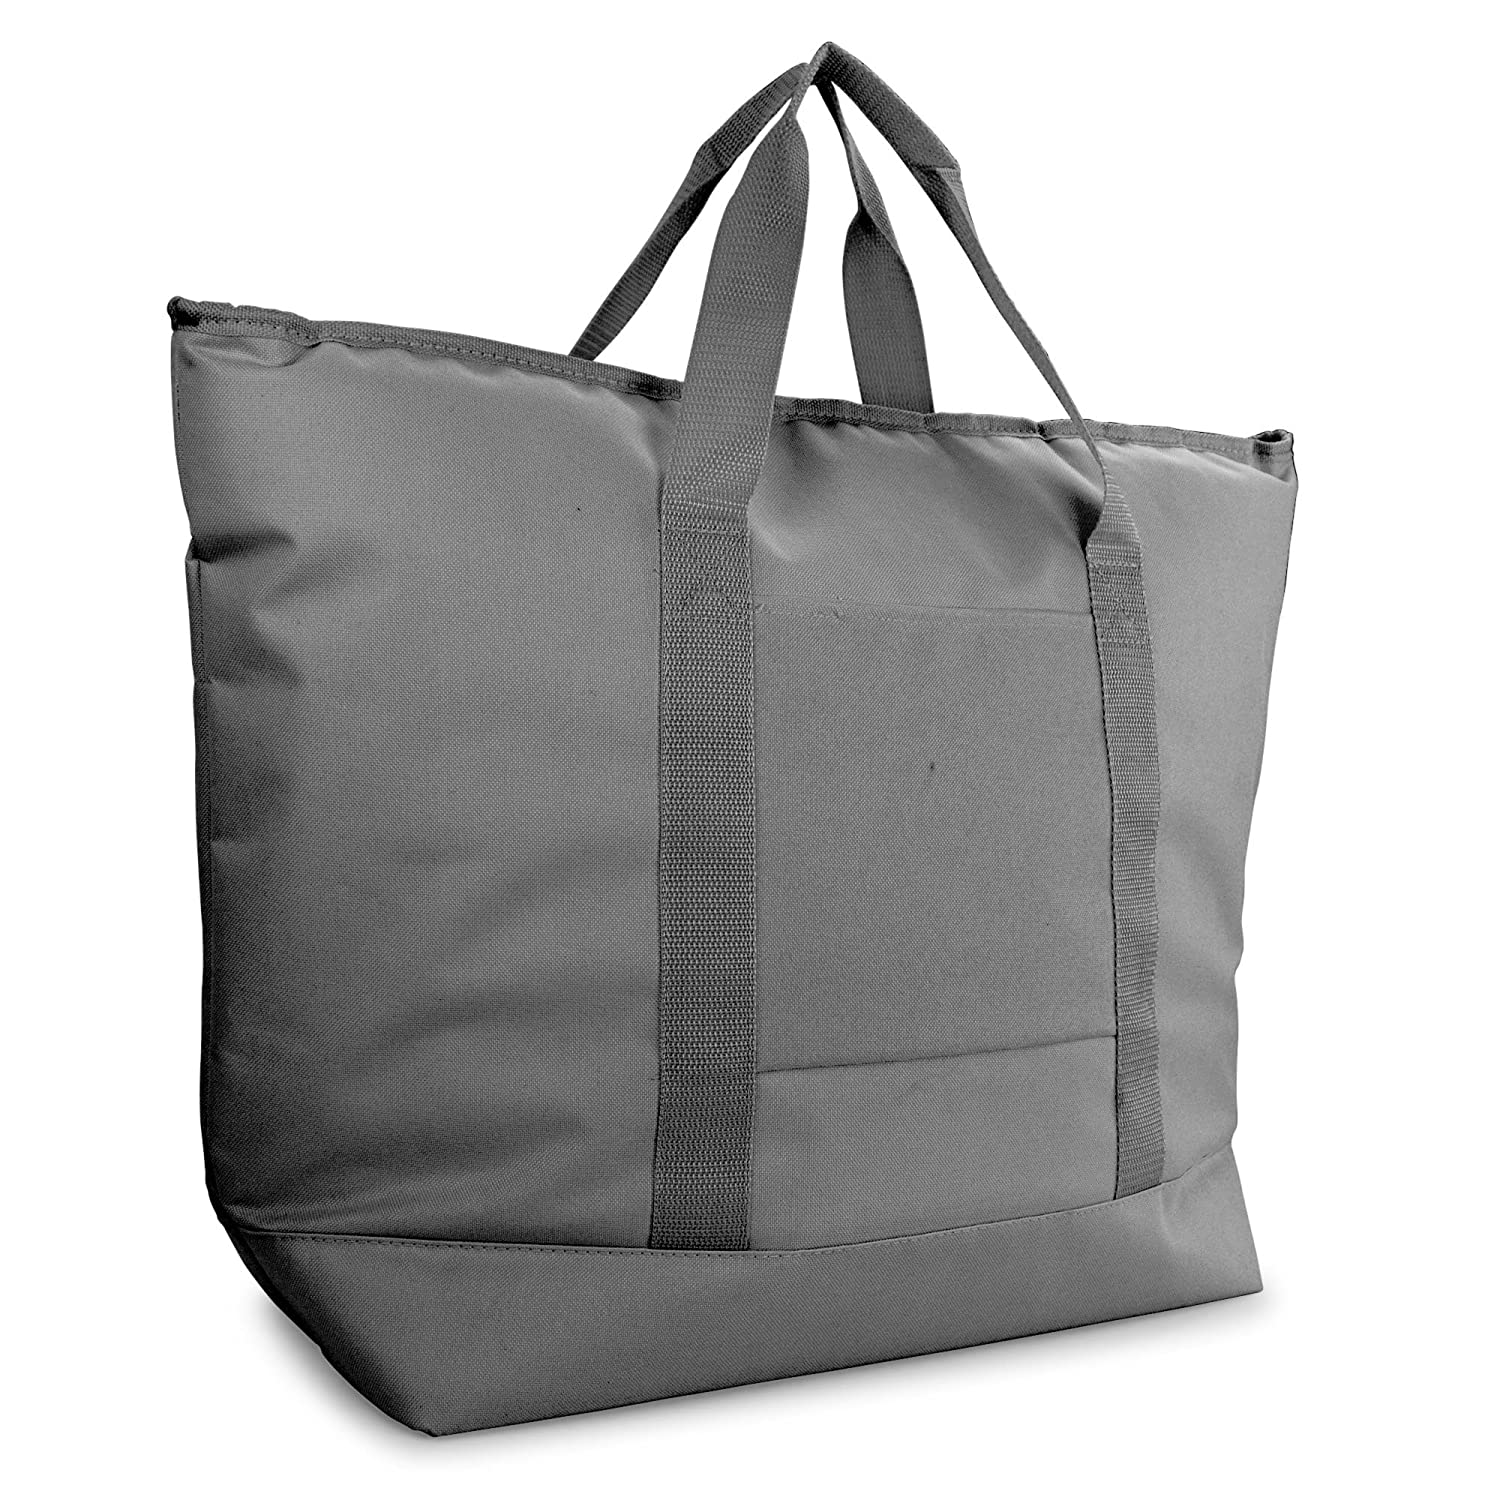 DALIX 25 Large Cooler Tote Bag w Zipper Insulated in Gray